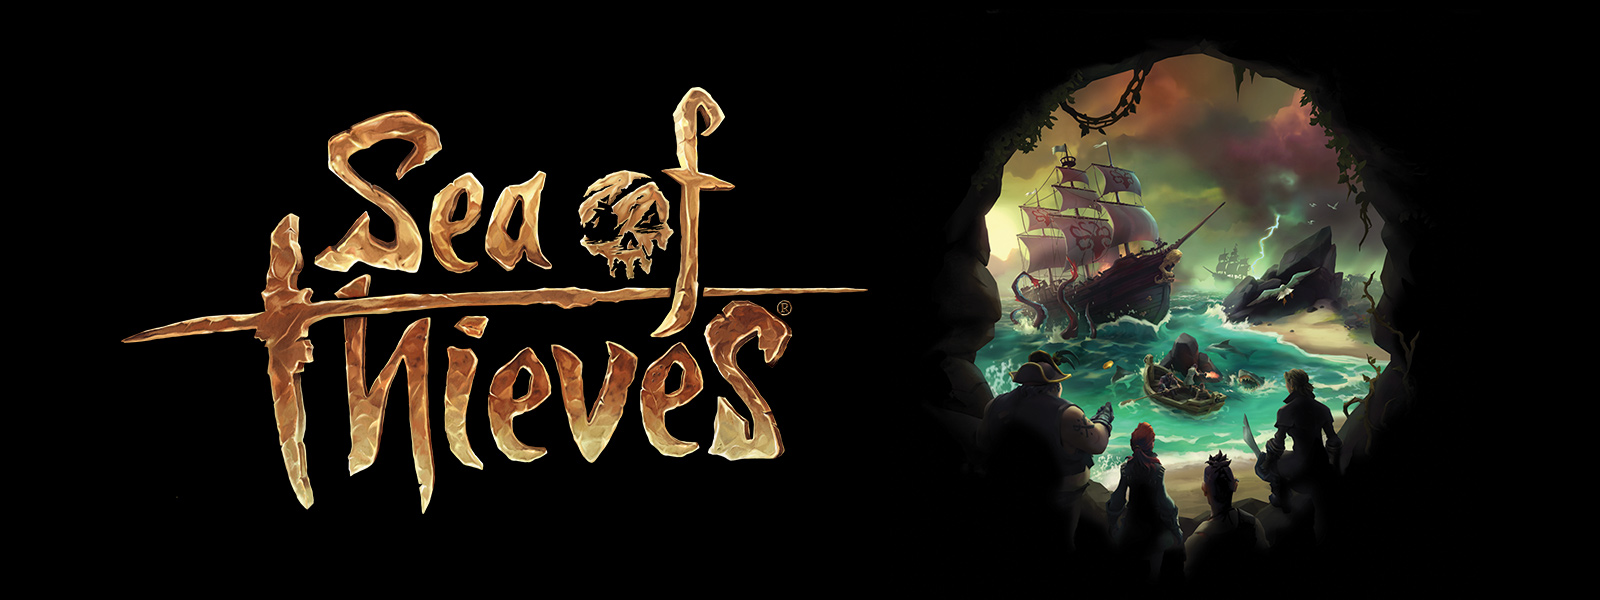 Sea of Thieves title and hero banner